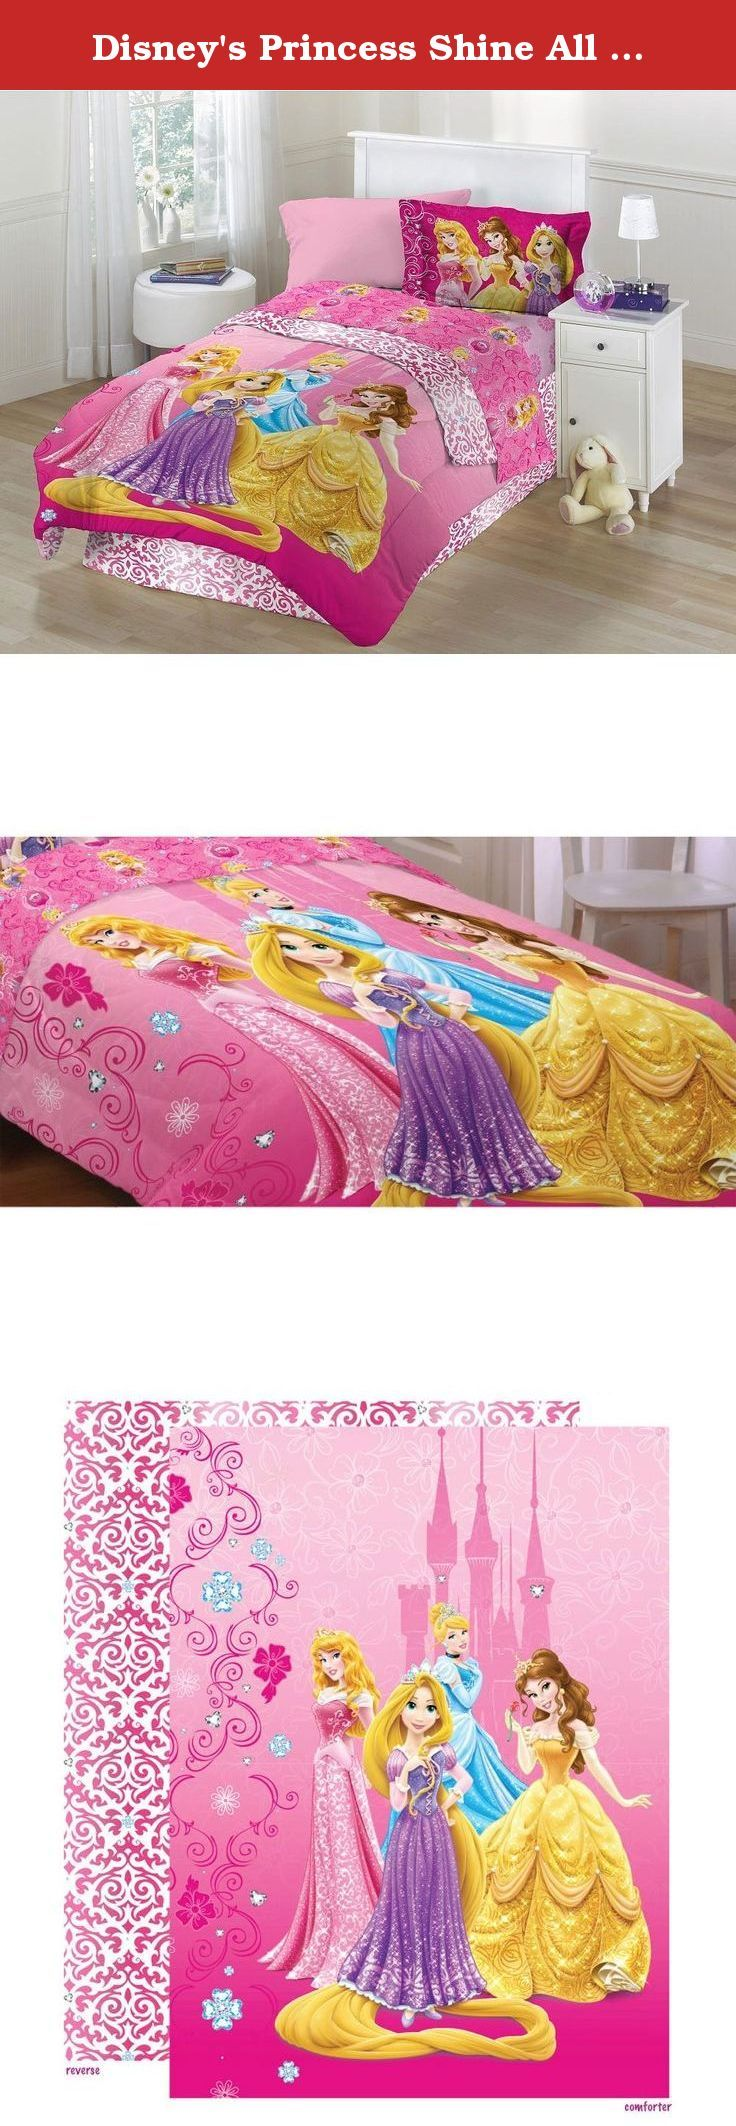 Disney's Princess Shine All The Time Twin Comforter Set. Let your little one shine like a Disney princess with this beautiful comforter set! It comes with a twin size comforter, bedskirt, and one standard pillow sham. Complete her princess room by adding coordinating sheets and wall accents (sold separately). CONTENTS: One twin bed size comforter measuring approximately 64 x 86 inches (163 cm x 218.4 cm). One bed-skirt measuring 39 x 75 inches (99 x 191 cm) to fit a standard twin…